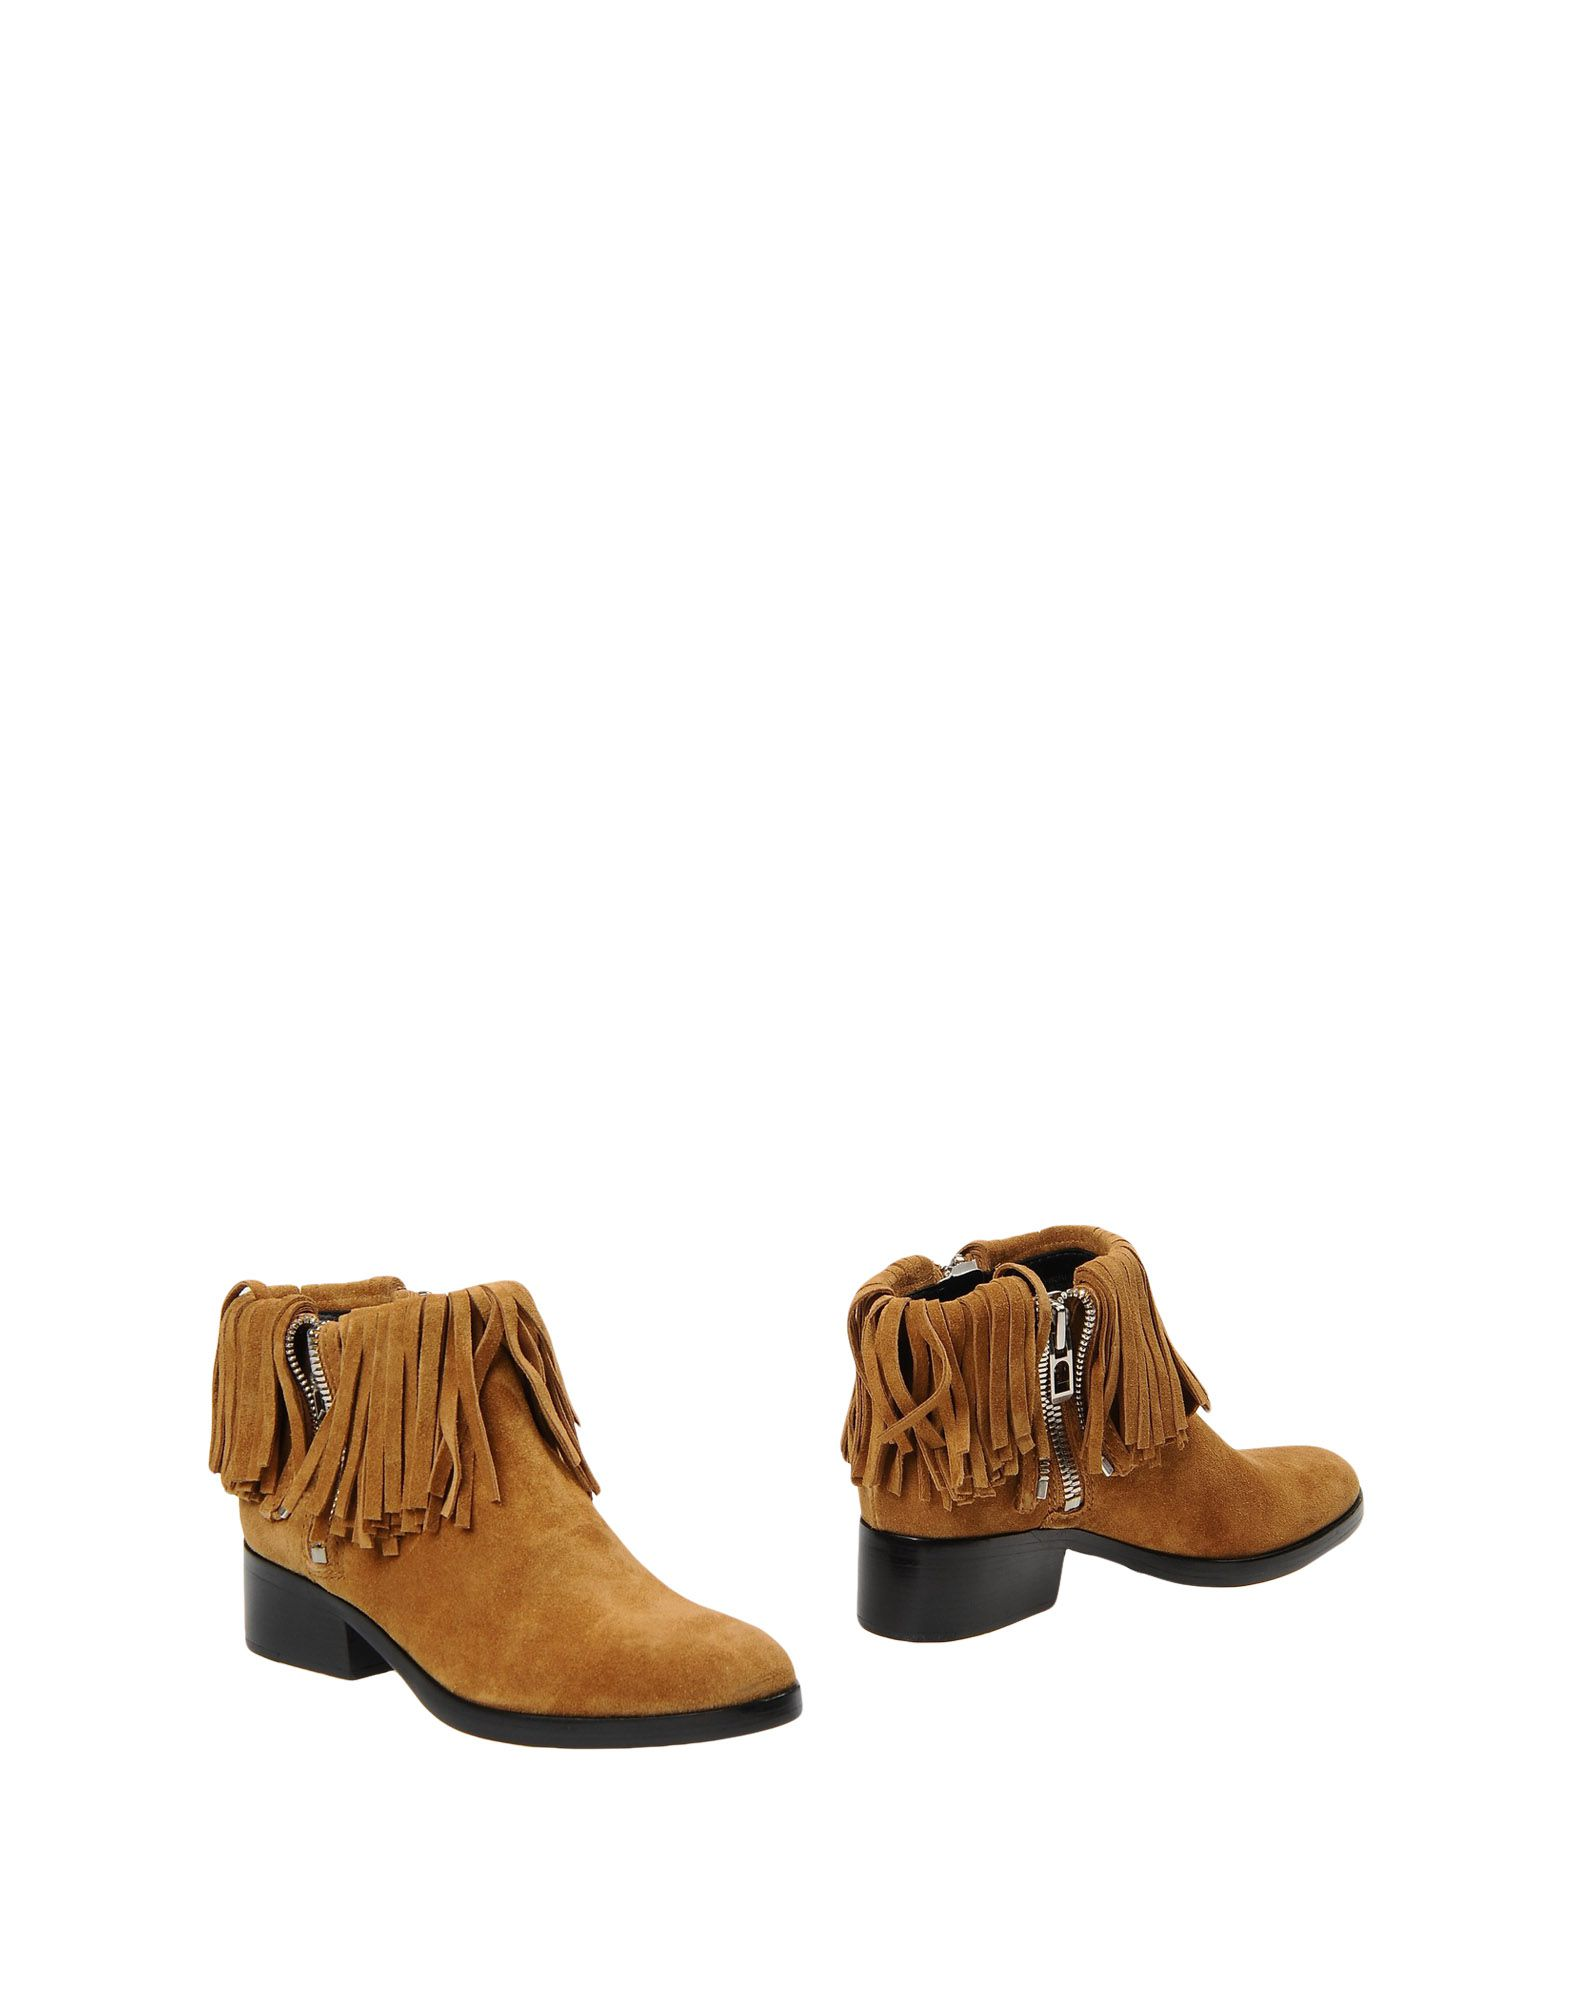 Bottine 3.1 Phillip Lim Femme - Bottines 3.1 Phillip Lim sur